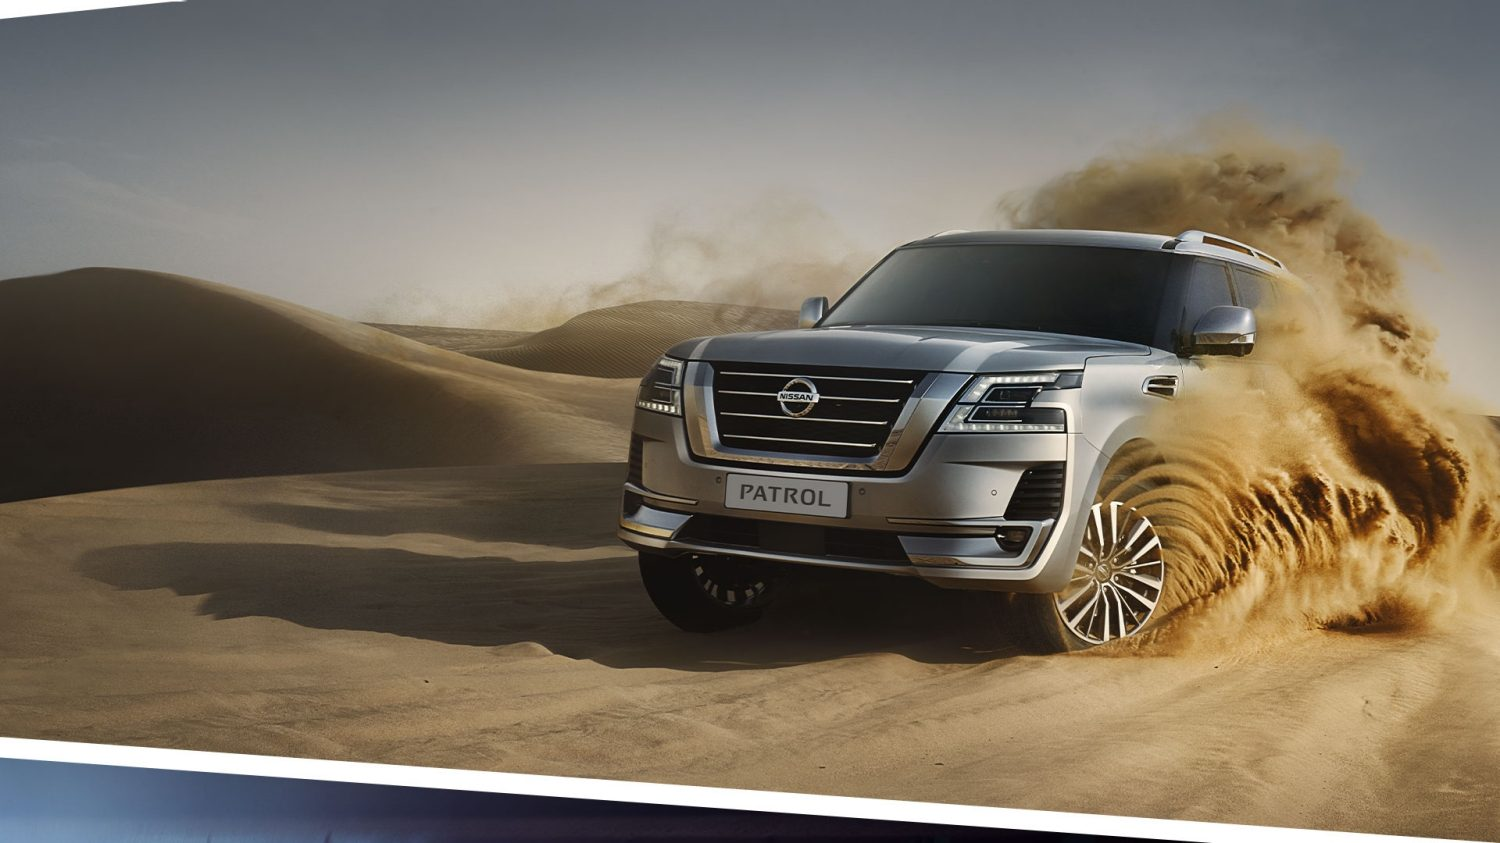 2020 Patrol Nissan SUV driving off-road